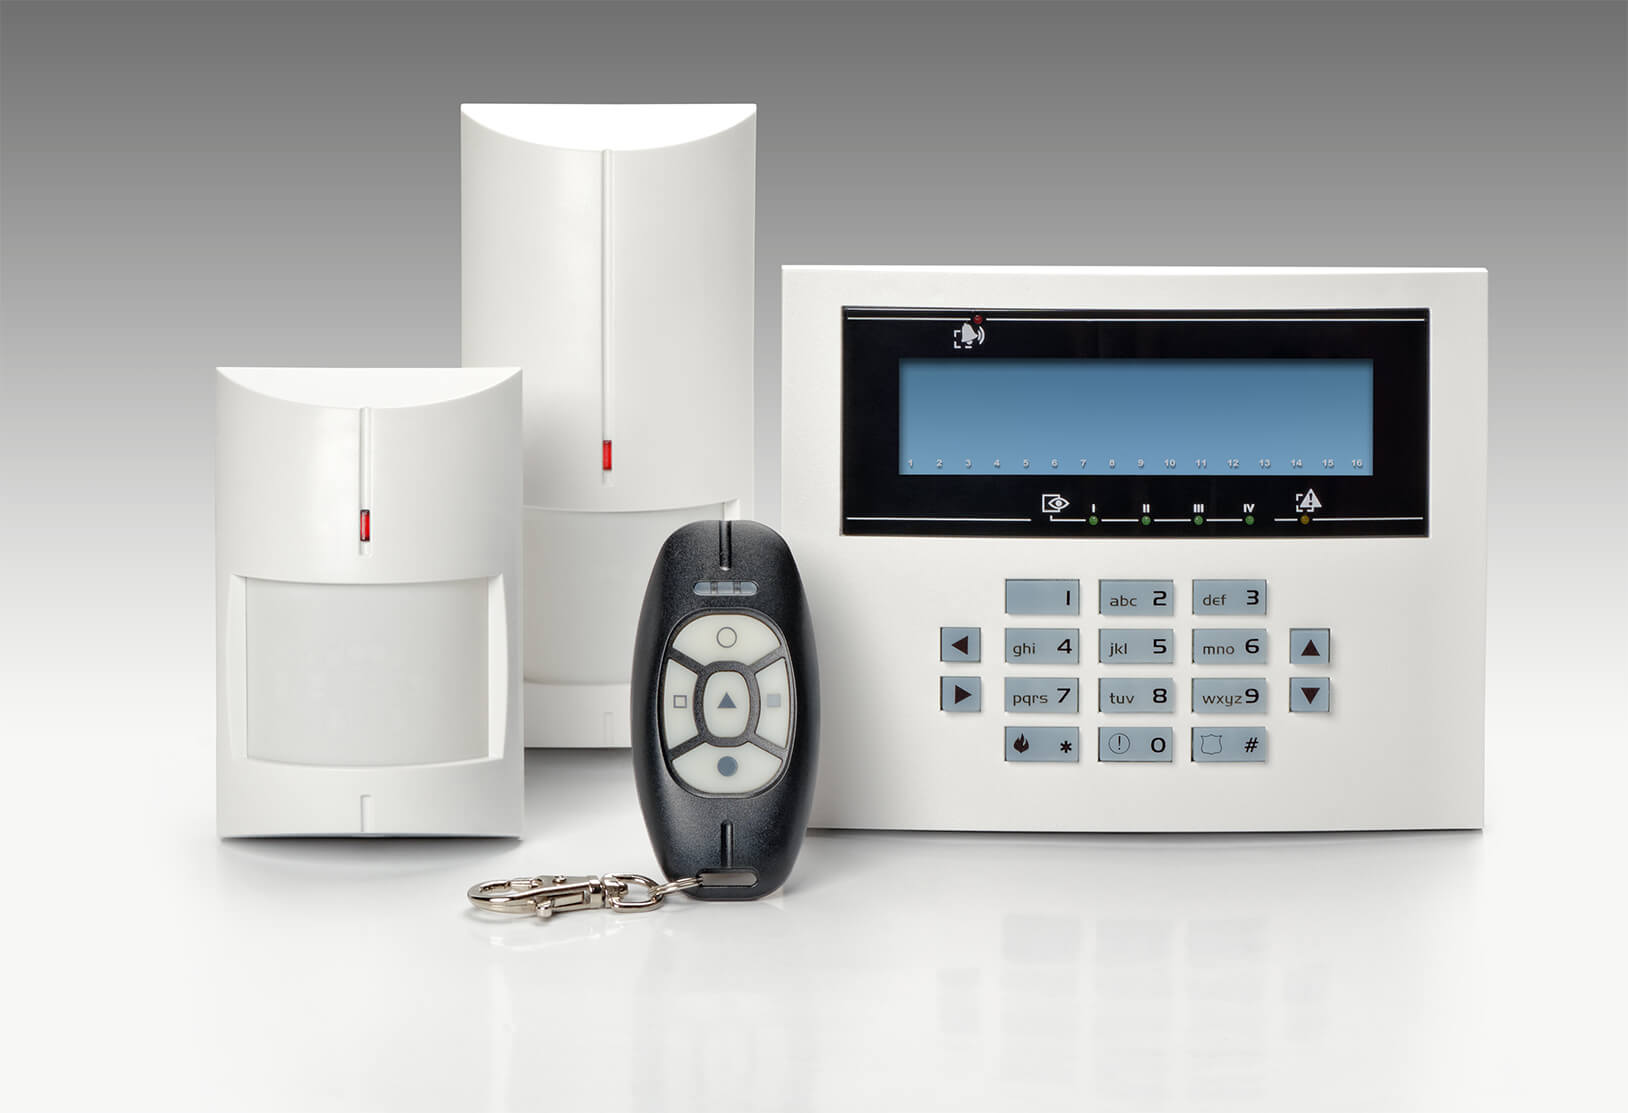 Business & Residential NACOSS Approved Burglar Alarms In Covent Garden WC2 - Local Covent Garden WC2 security company.Call 02078872244 - Dedicated to Safety & Security. Companies, shops and homes ..